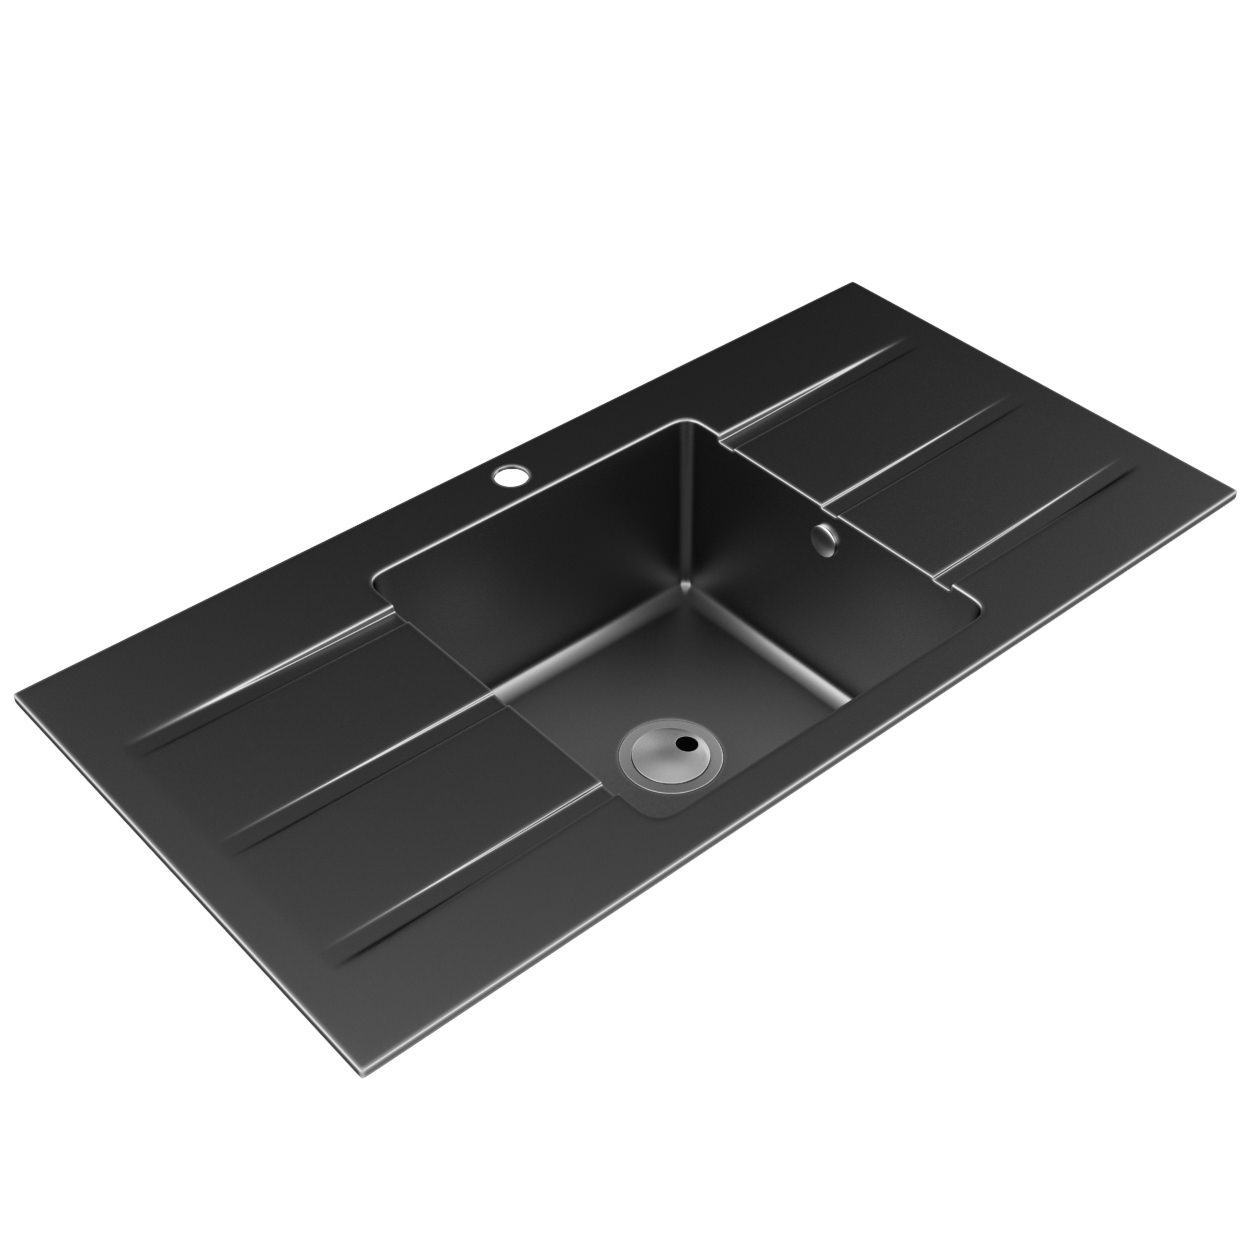 Double Bowl Ceramic Sink With Drainer : ... bowl sink abode zero one bowl kitchen sink with double drainer